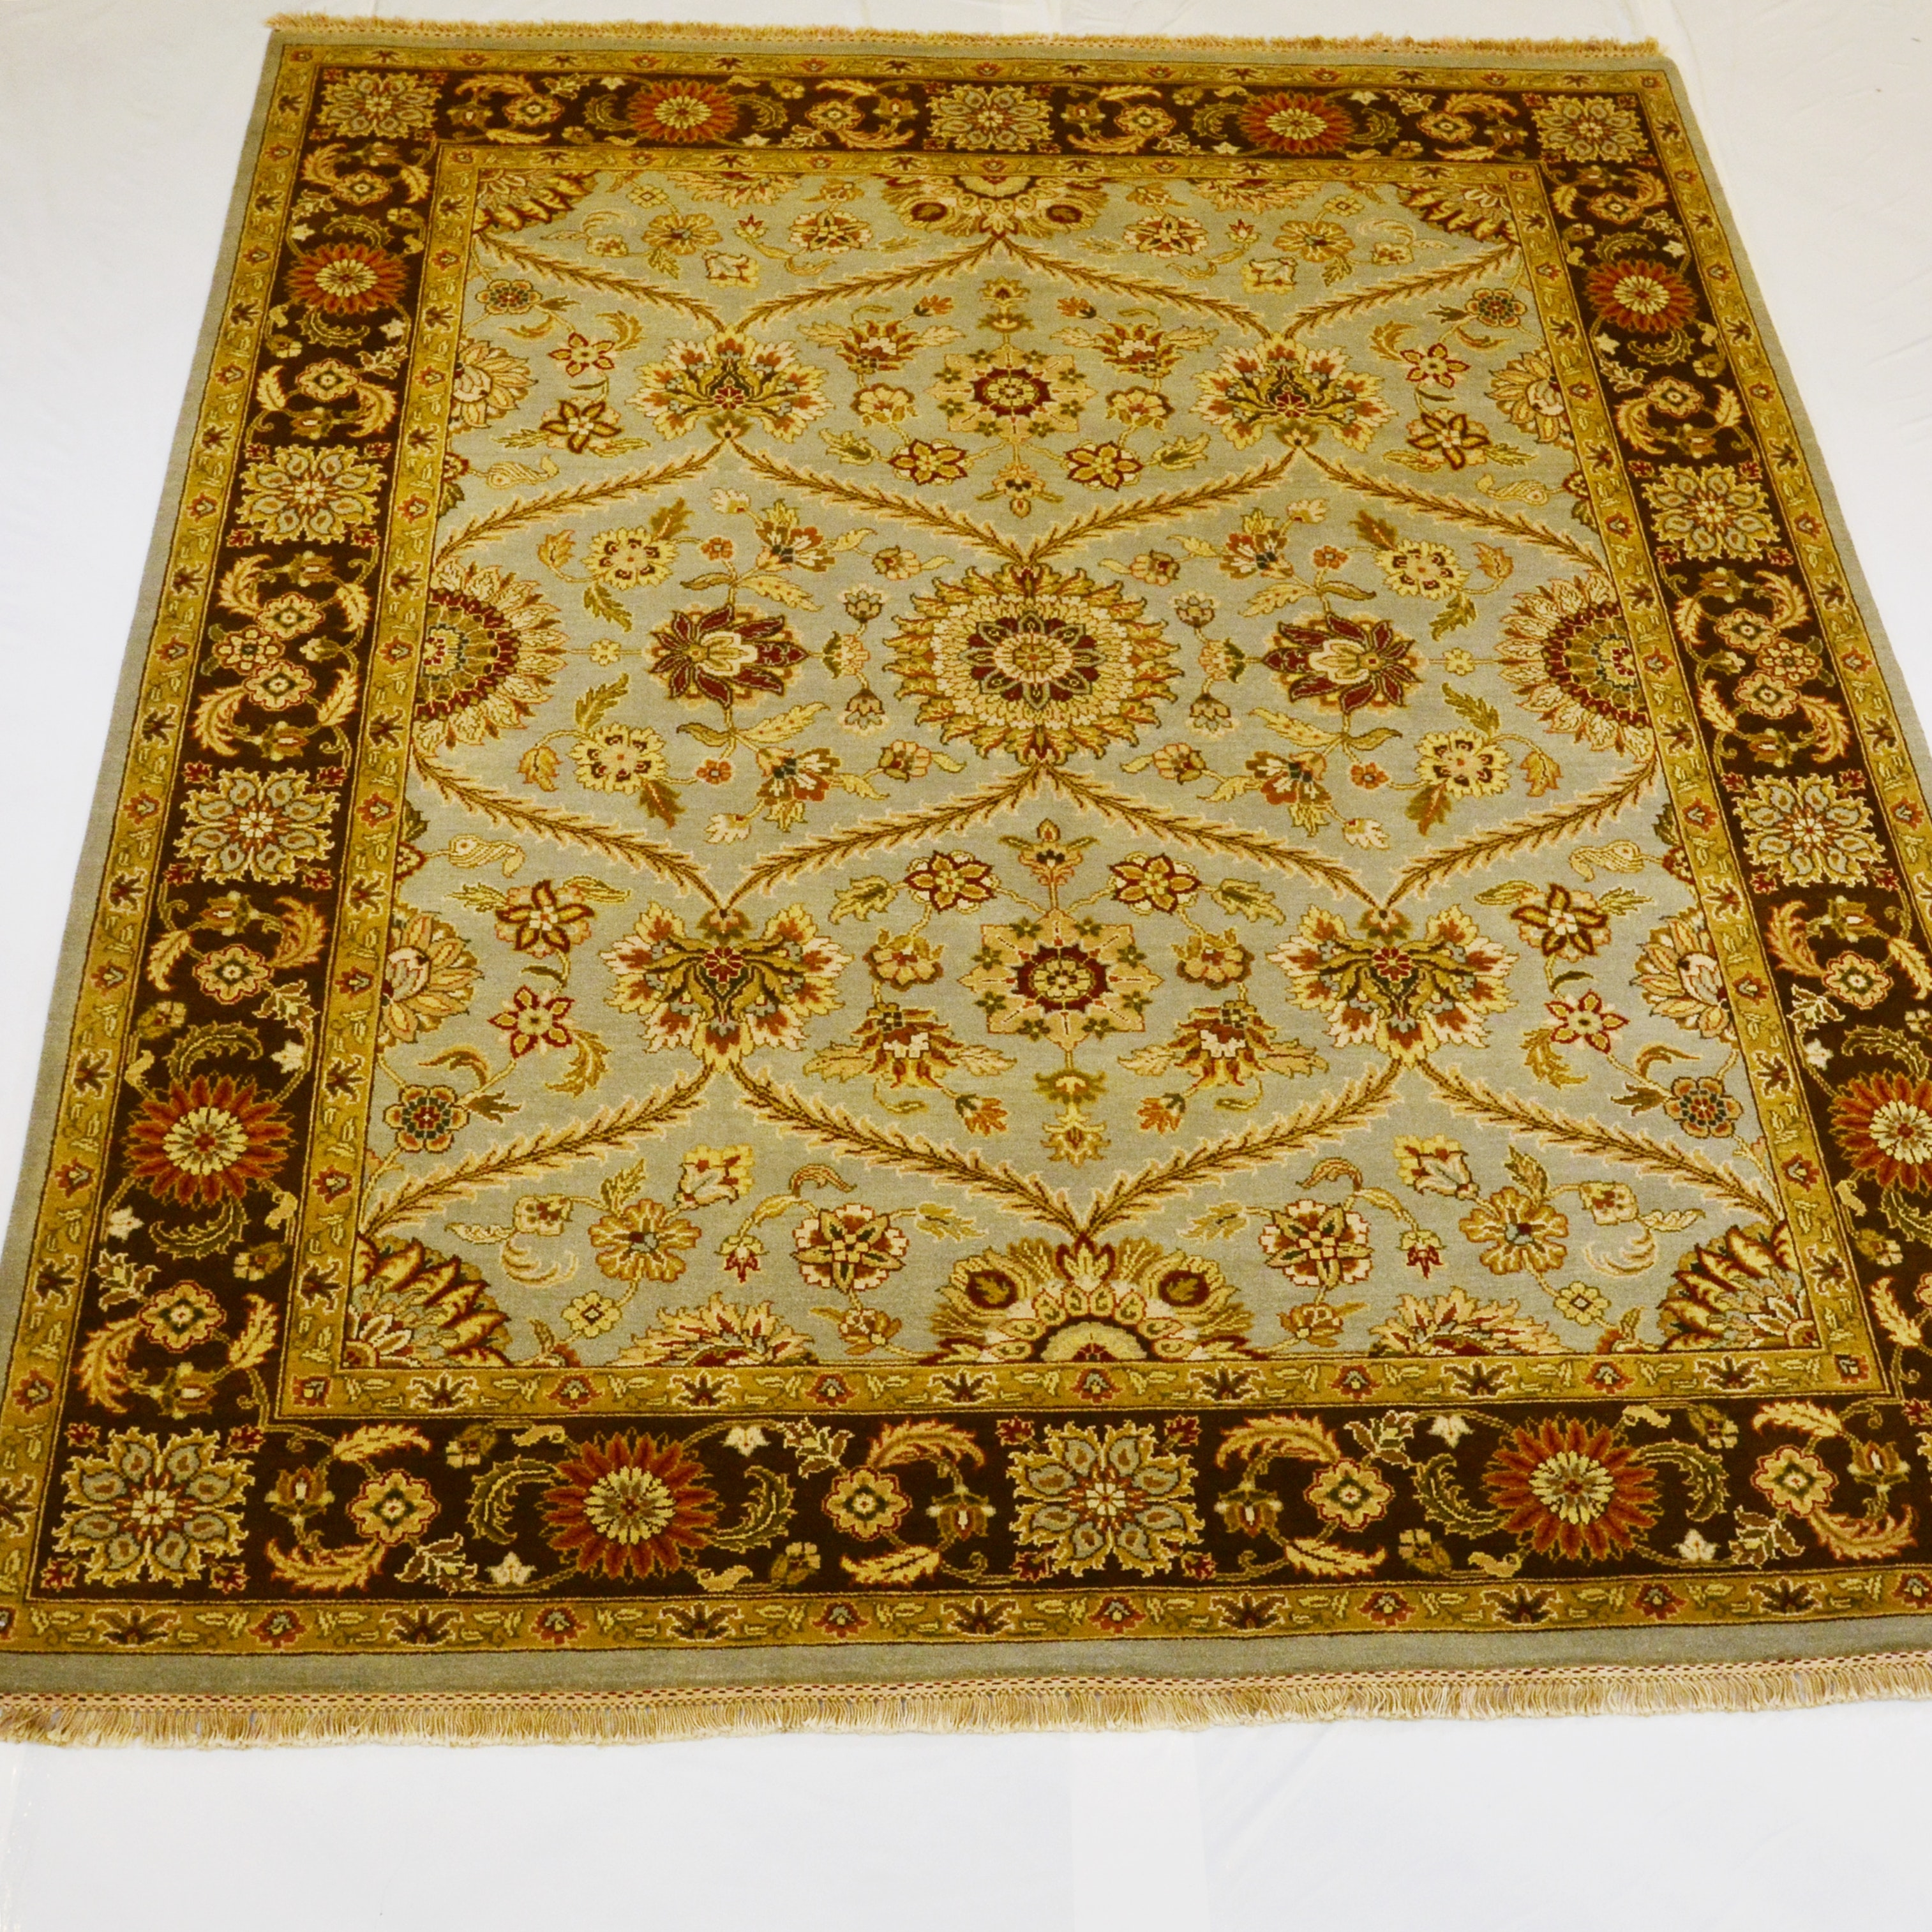 Hand-Knotted Classic Persian Design Wool Area Rug